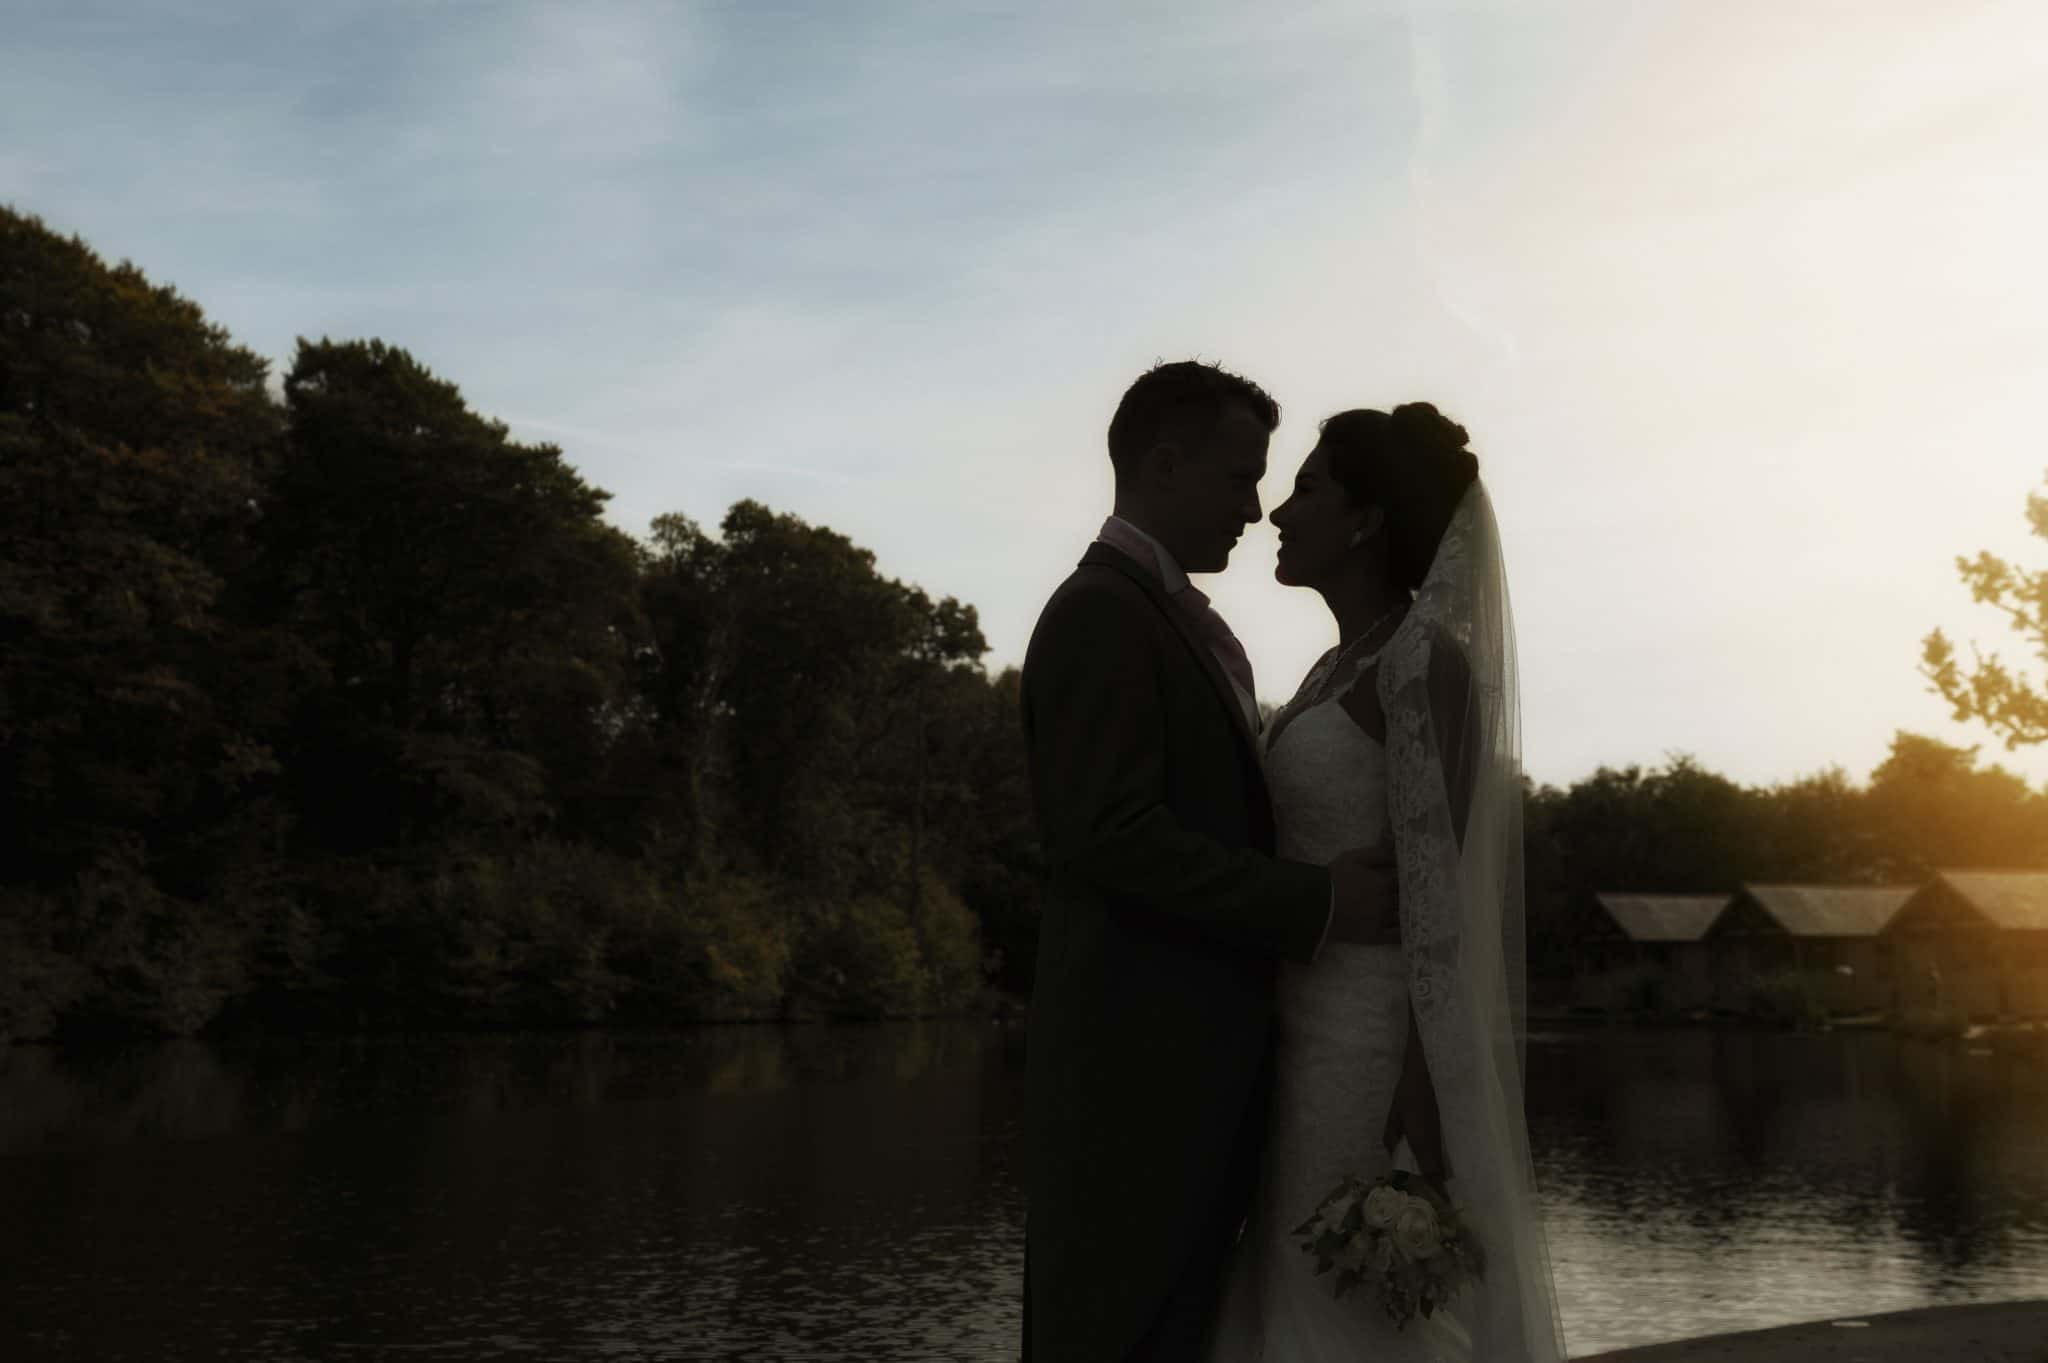 Cardiff wedding photographer - Bride & Groom silhouetted against the sky in front of a lake